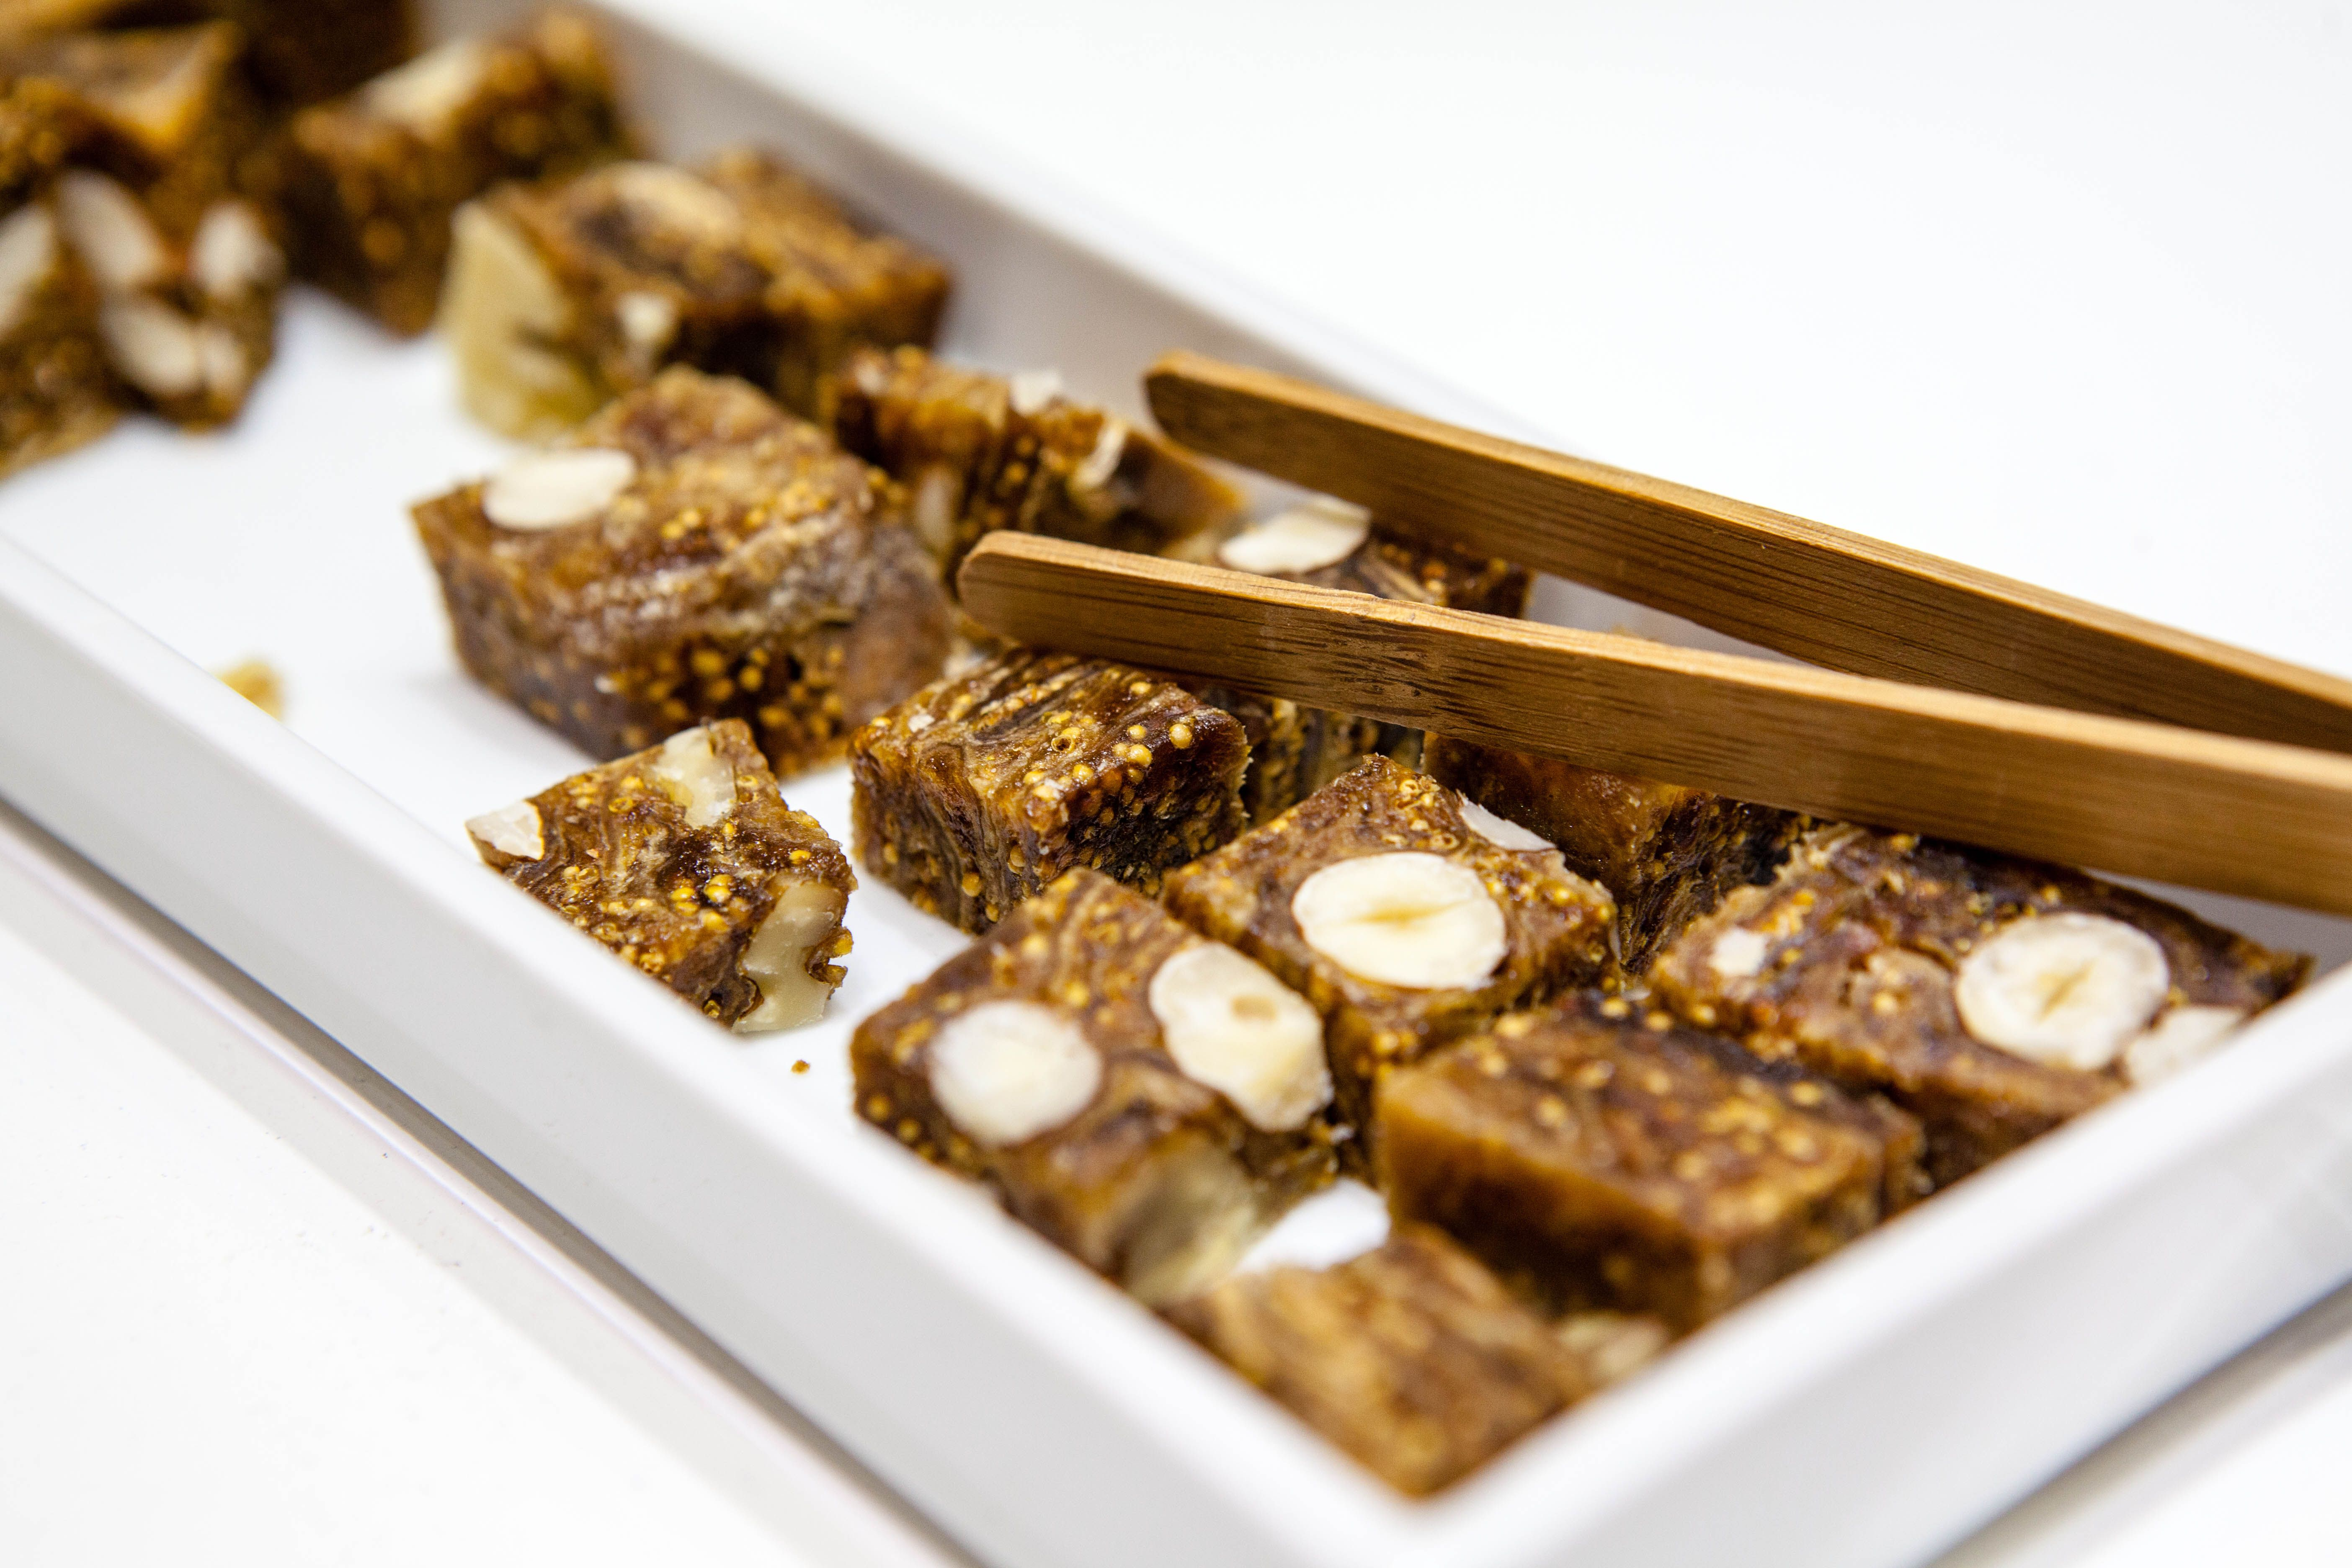 Mitica® Fig Cake with Mixed Nuts from Valencia, Spain. With Marcona Almonds, Hazelnuts, and Walnuts